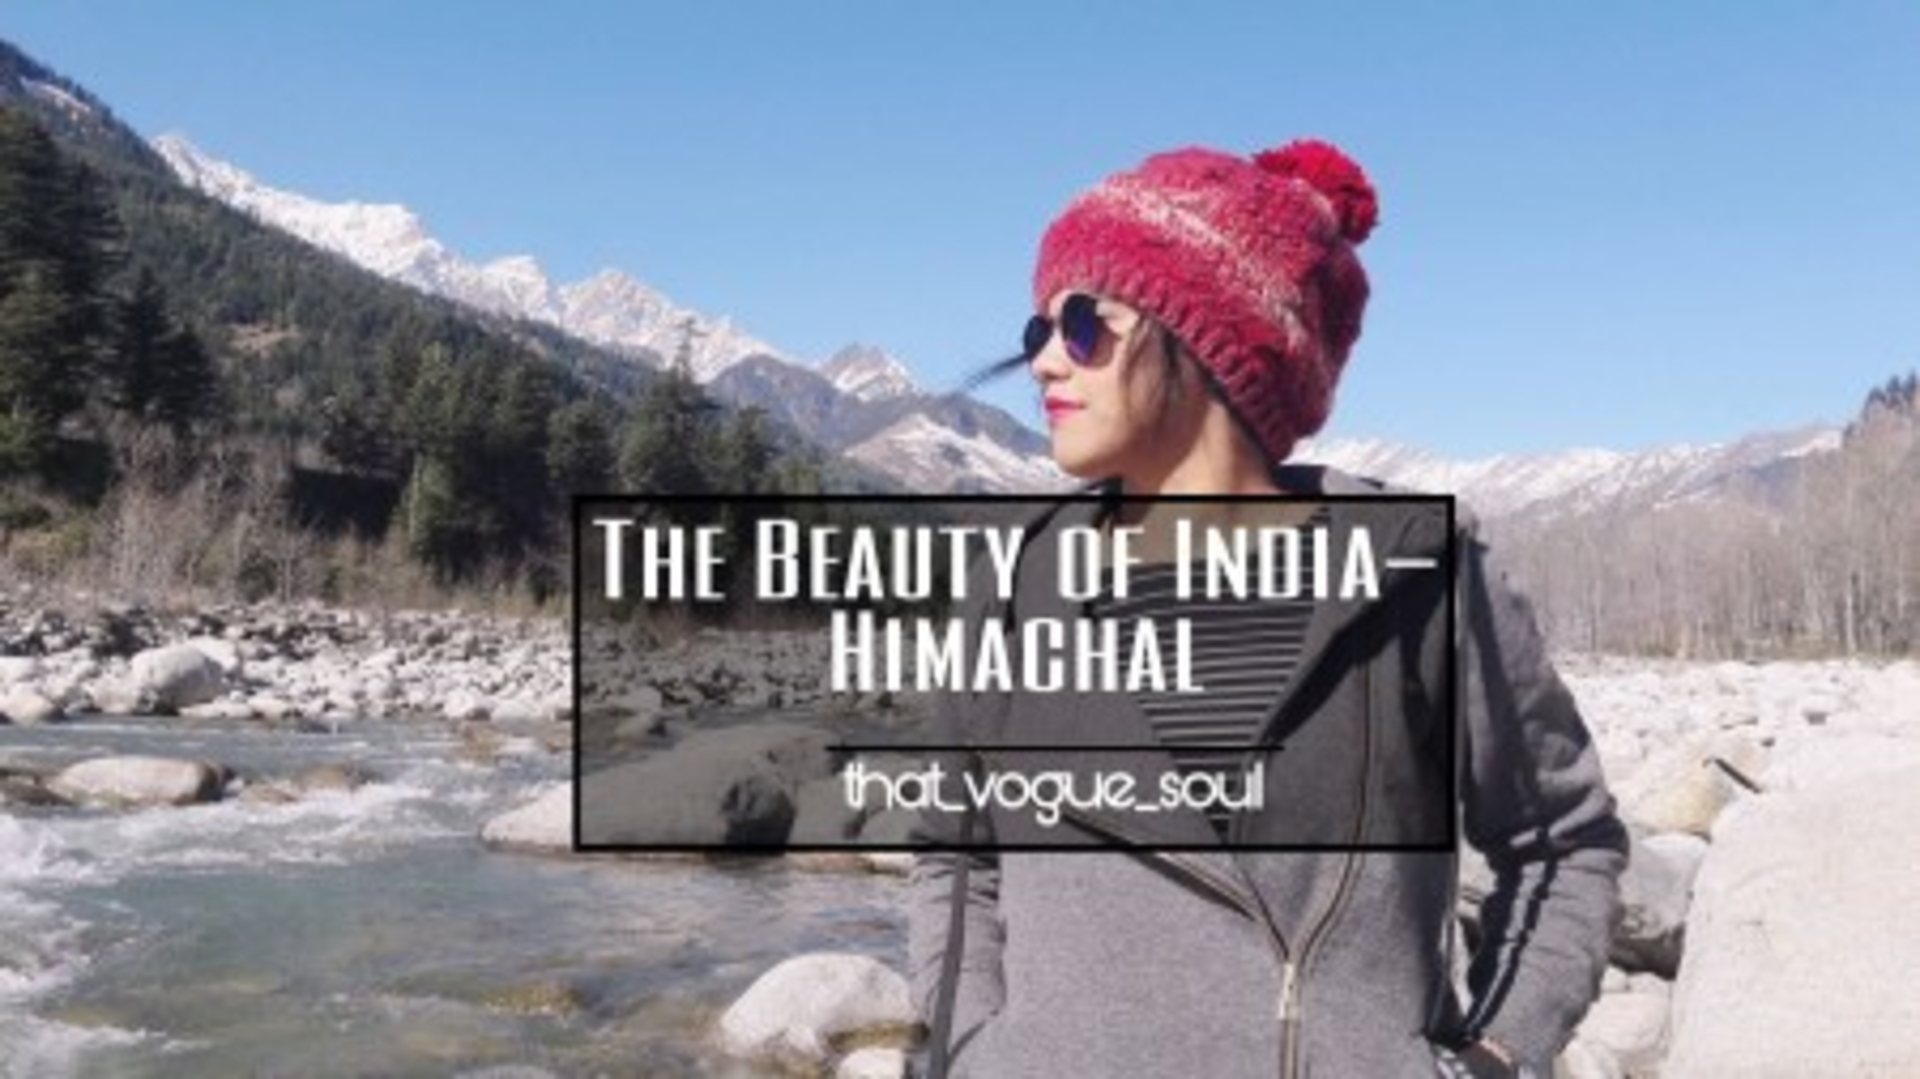 THE BEAUTY OF INDIA- HIMACHAL image